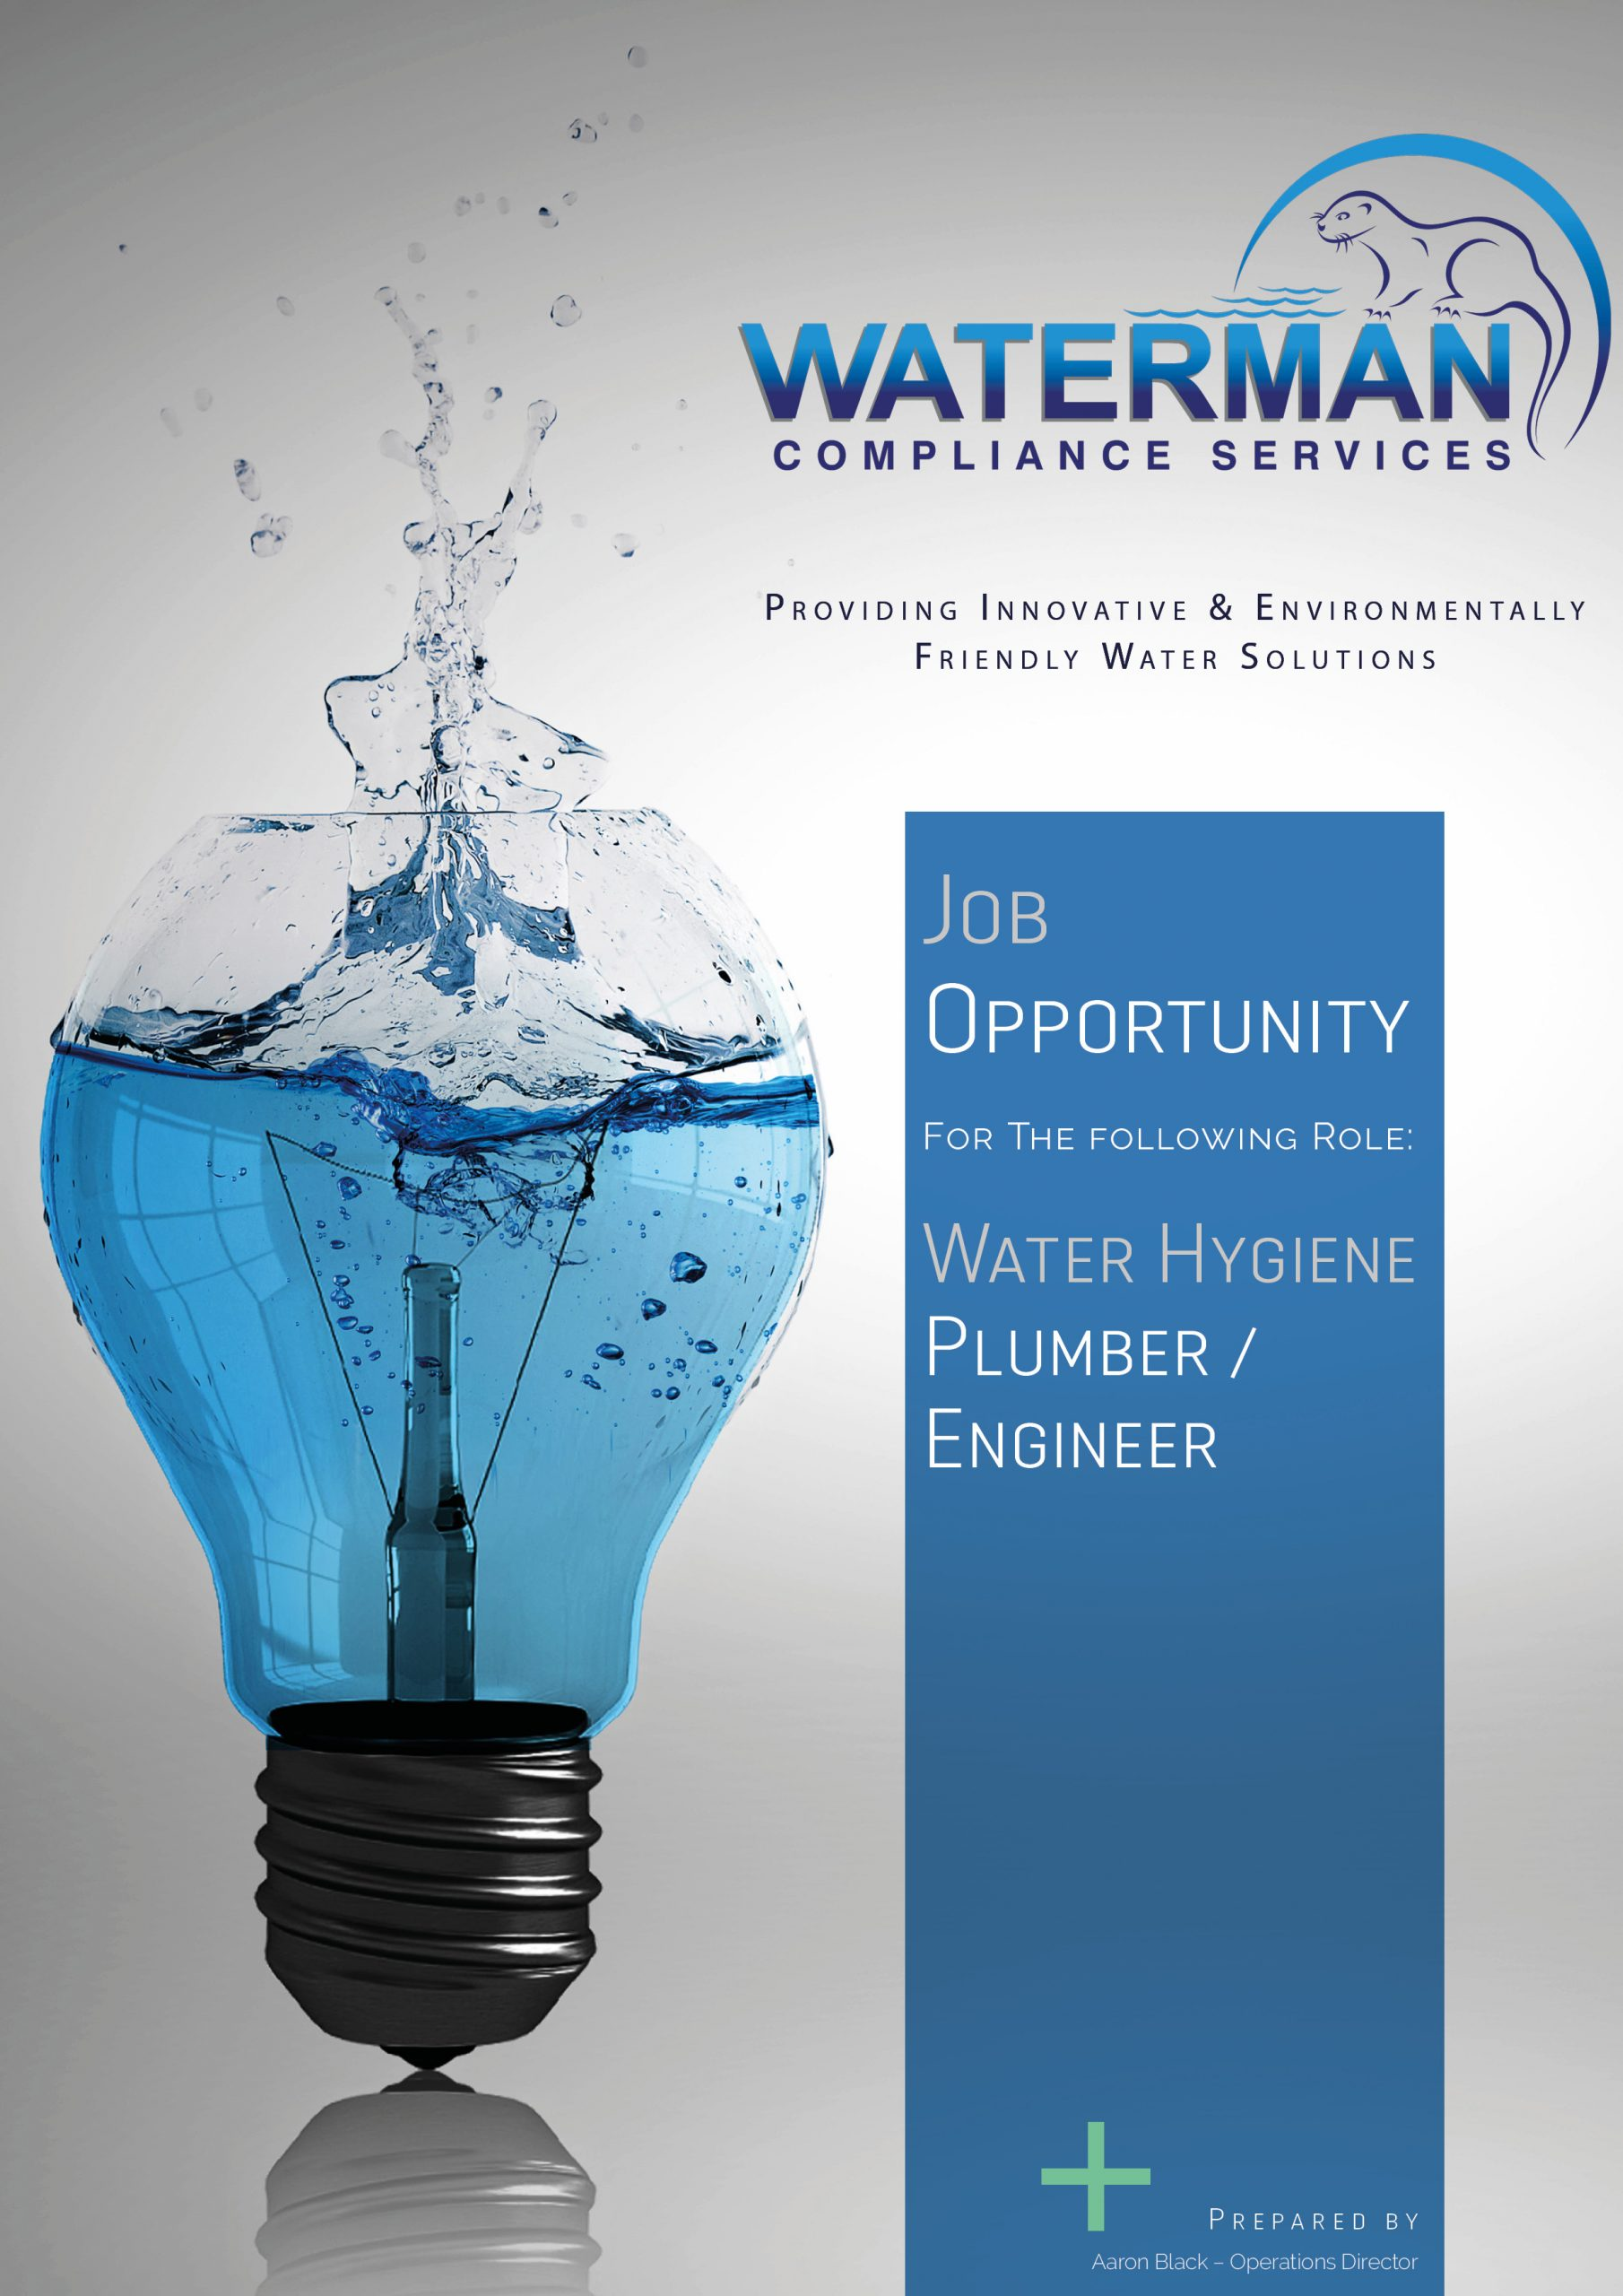 20200522 - Waterman Compliance Services Job Post - Water Hygiene Plumber Engineer